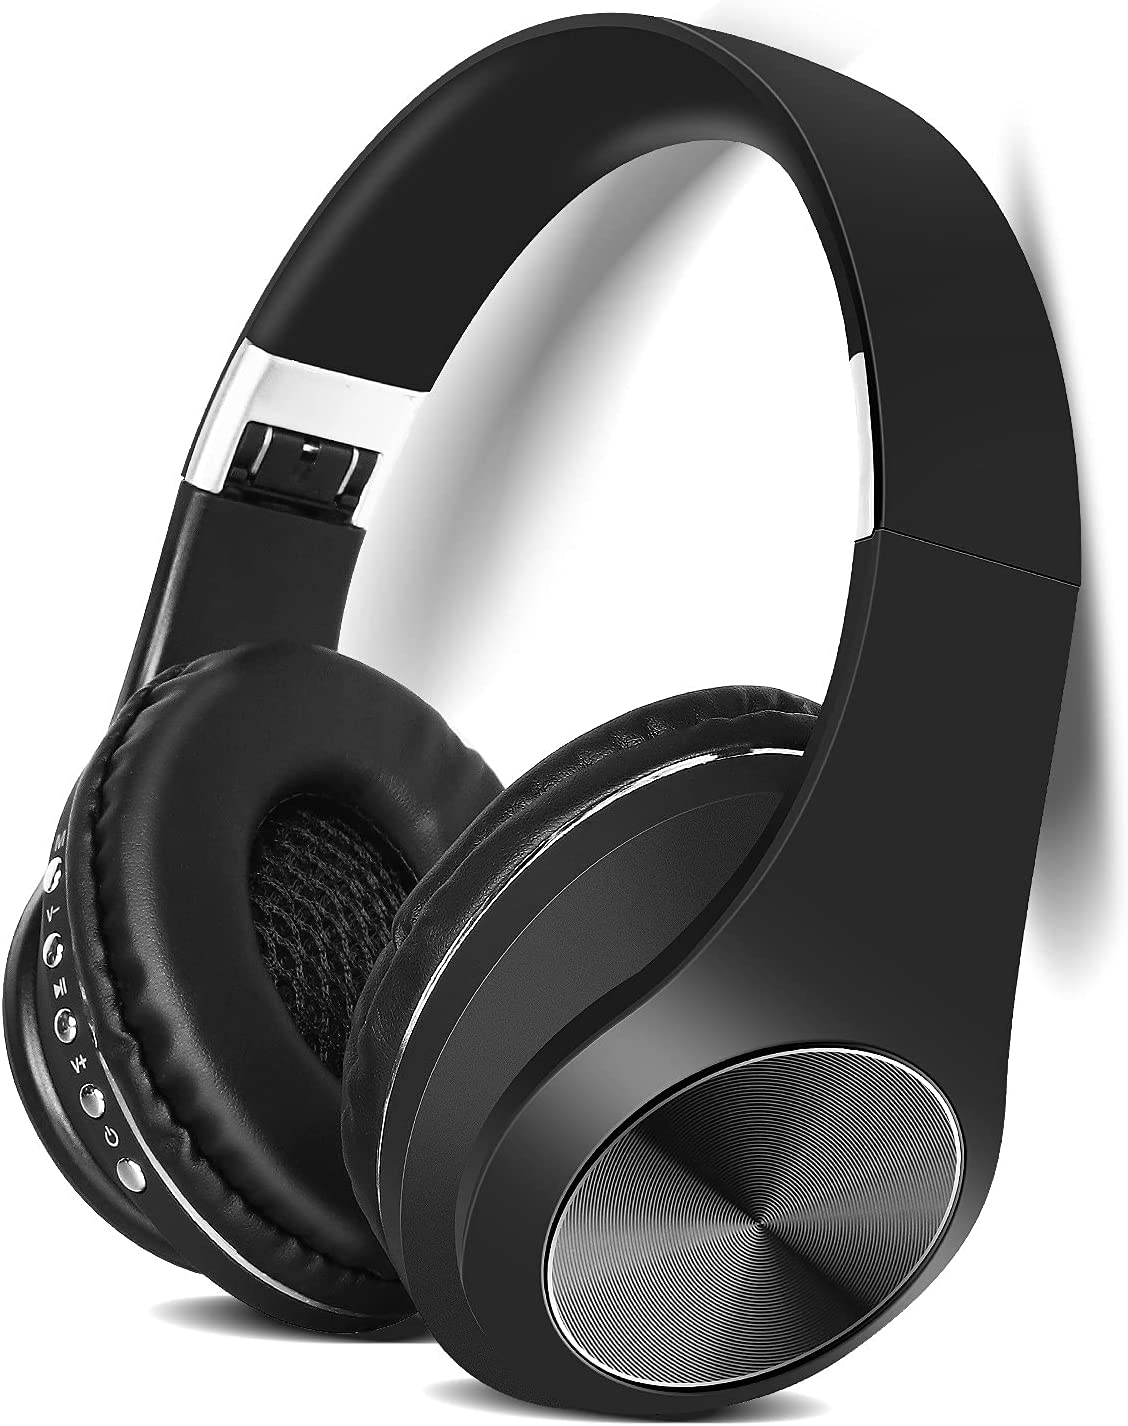 UrbanX UX991 Wireless Industry Headphones Overhead Leading with Super Special SALE held Omaha Mall